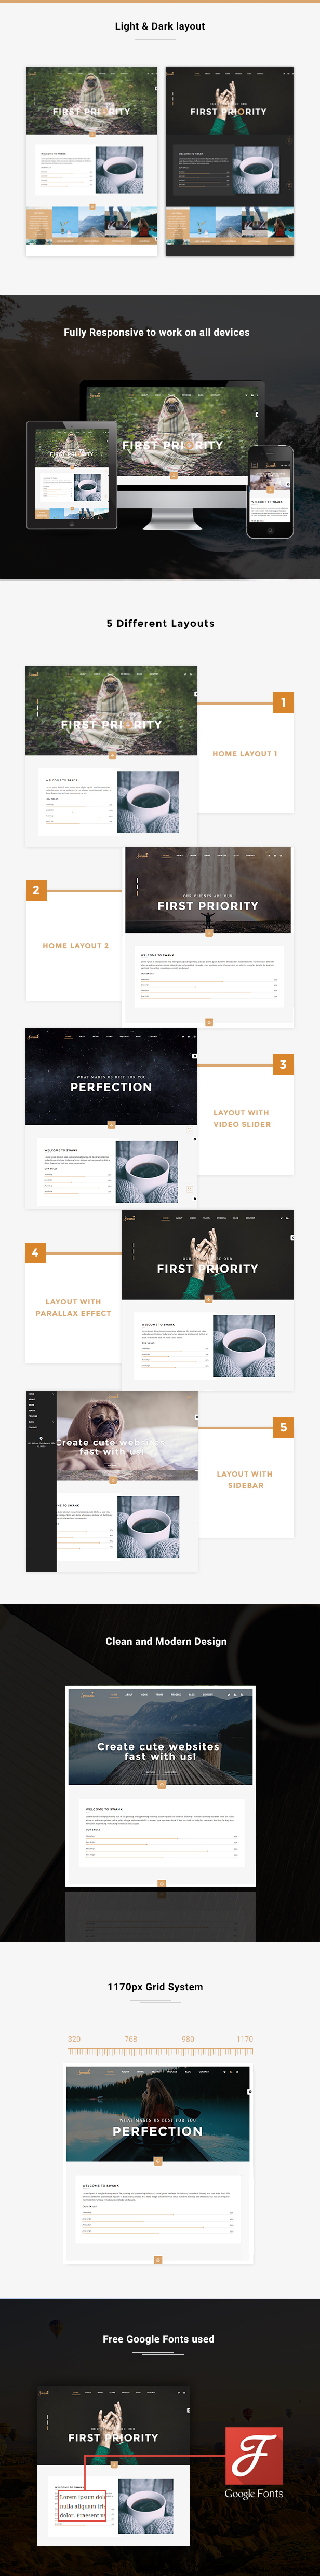 Swank - Creative One Page with Blog template - 1